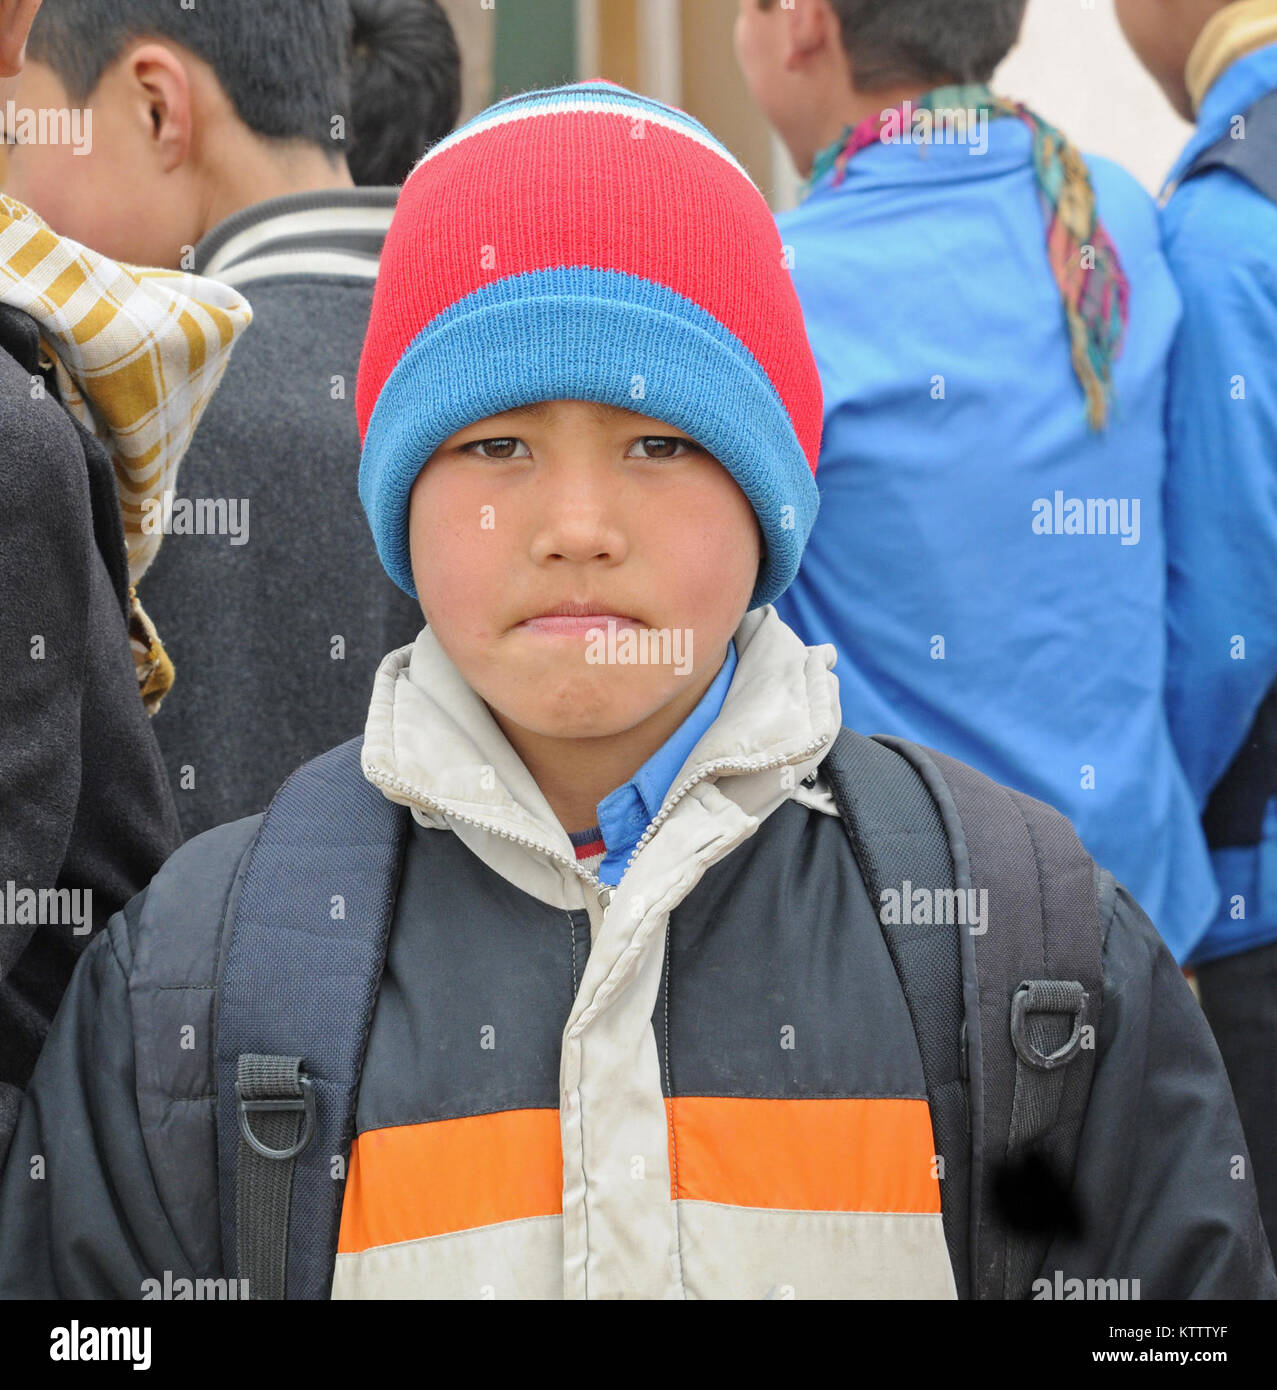 A young Afghan boy stands outside of the Aliabad School near Mazar-e-Sharif, Afghanistan, March 10, 2012. Their - Stock Image